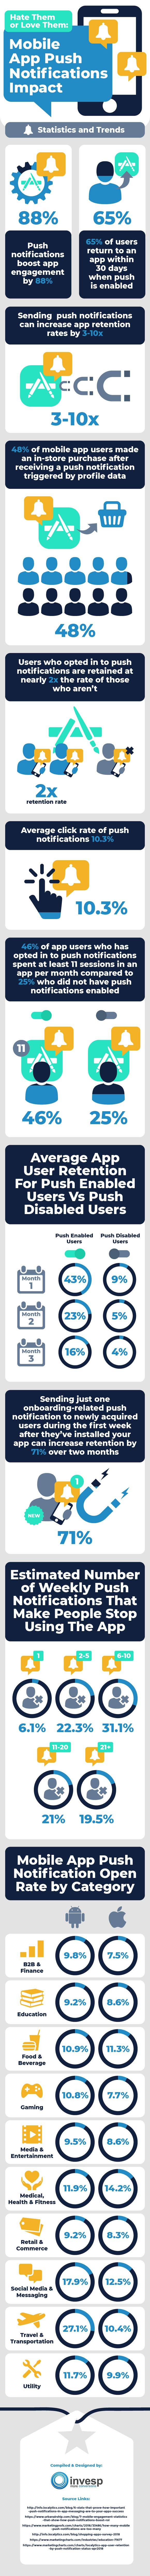 The growing importance of mobile app push notification – Statistics and Trends